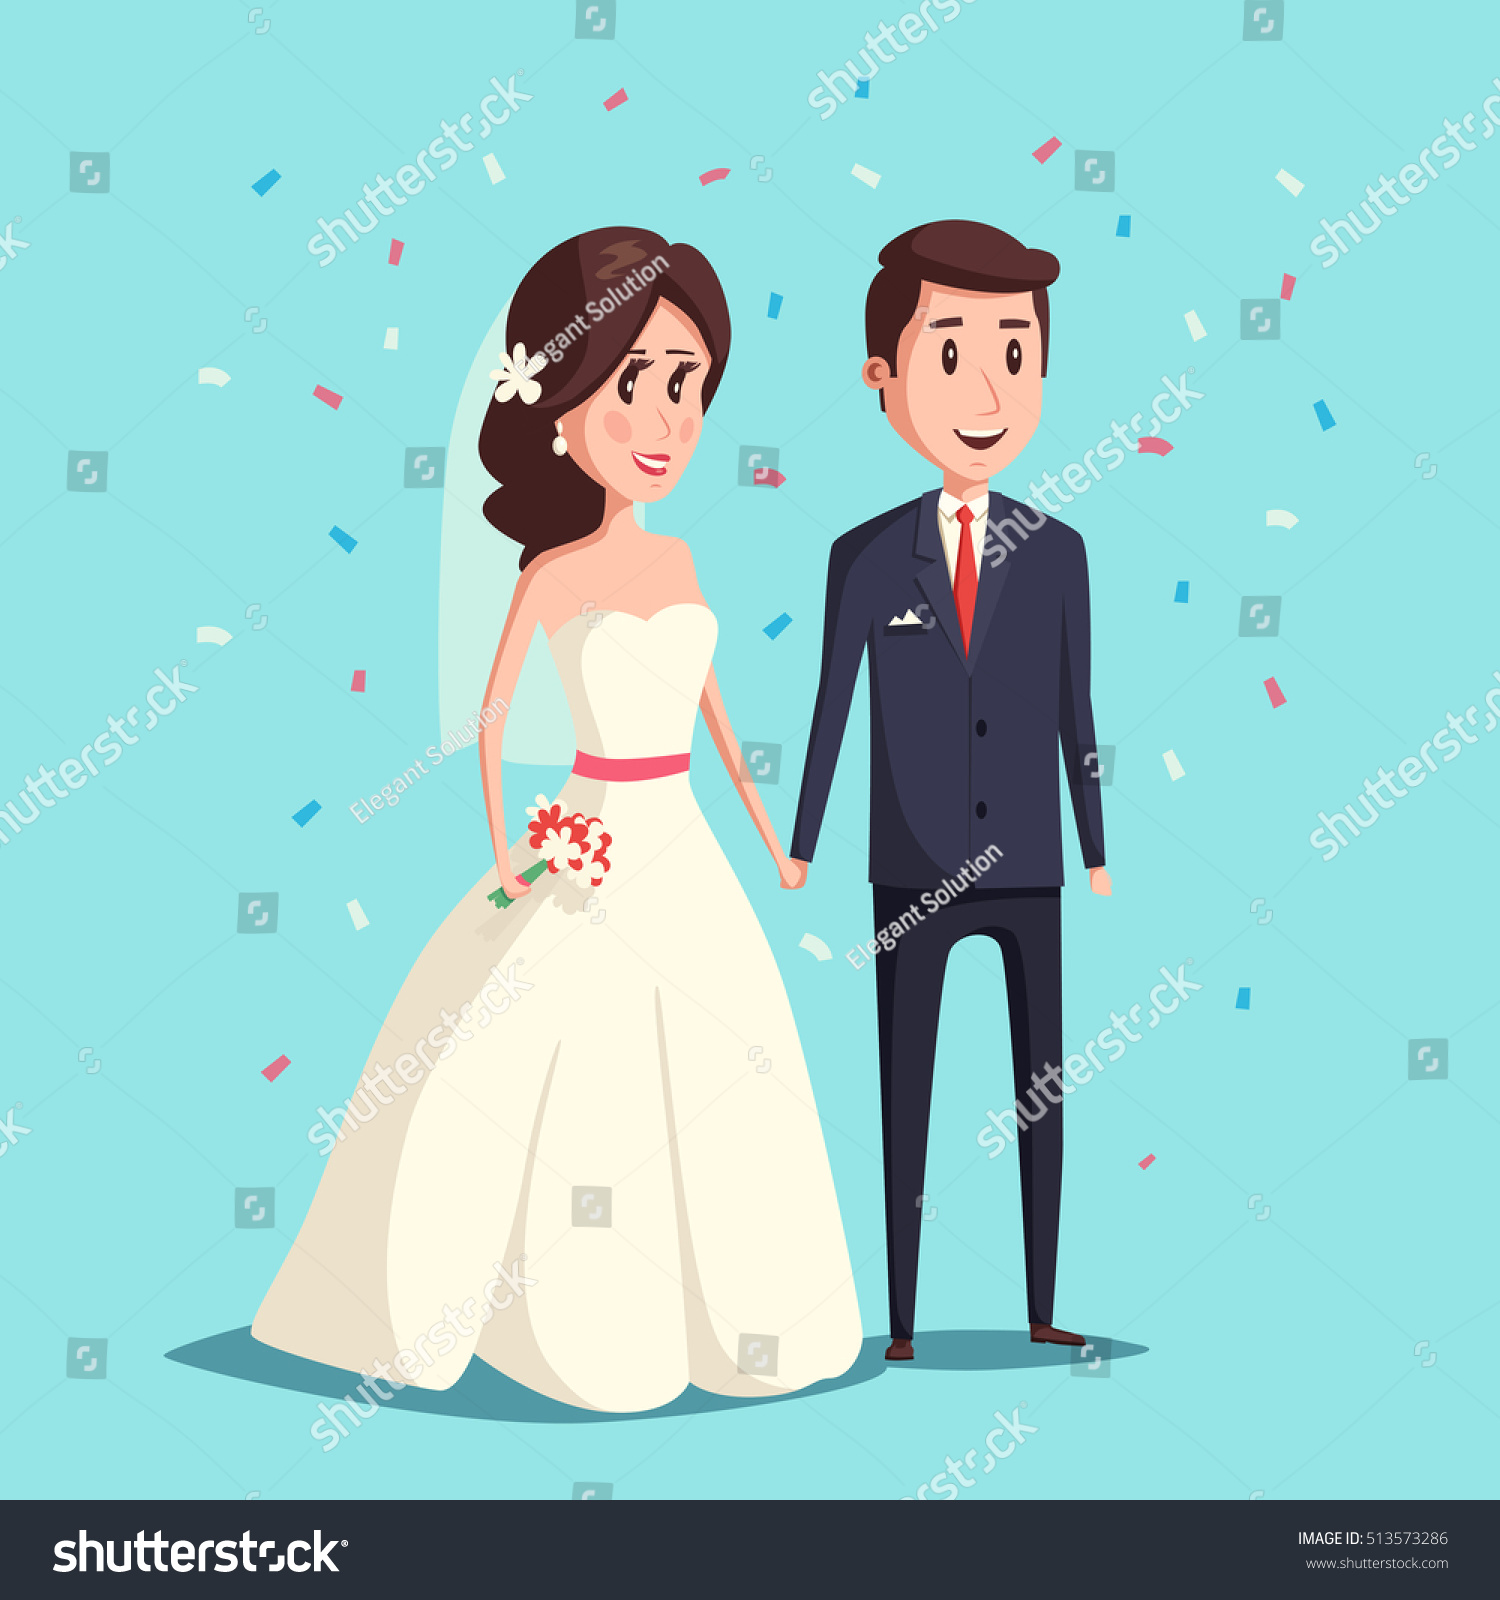 Bride Groom Love Wedding Couple Illustration Stock Vector Royalty Free 513573286